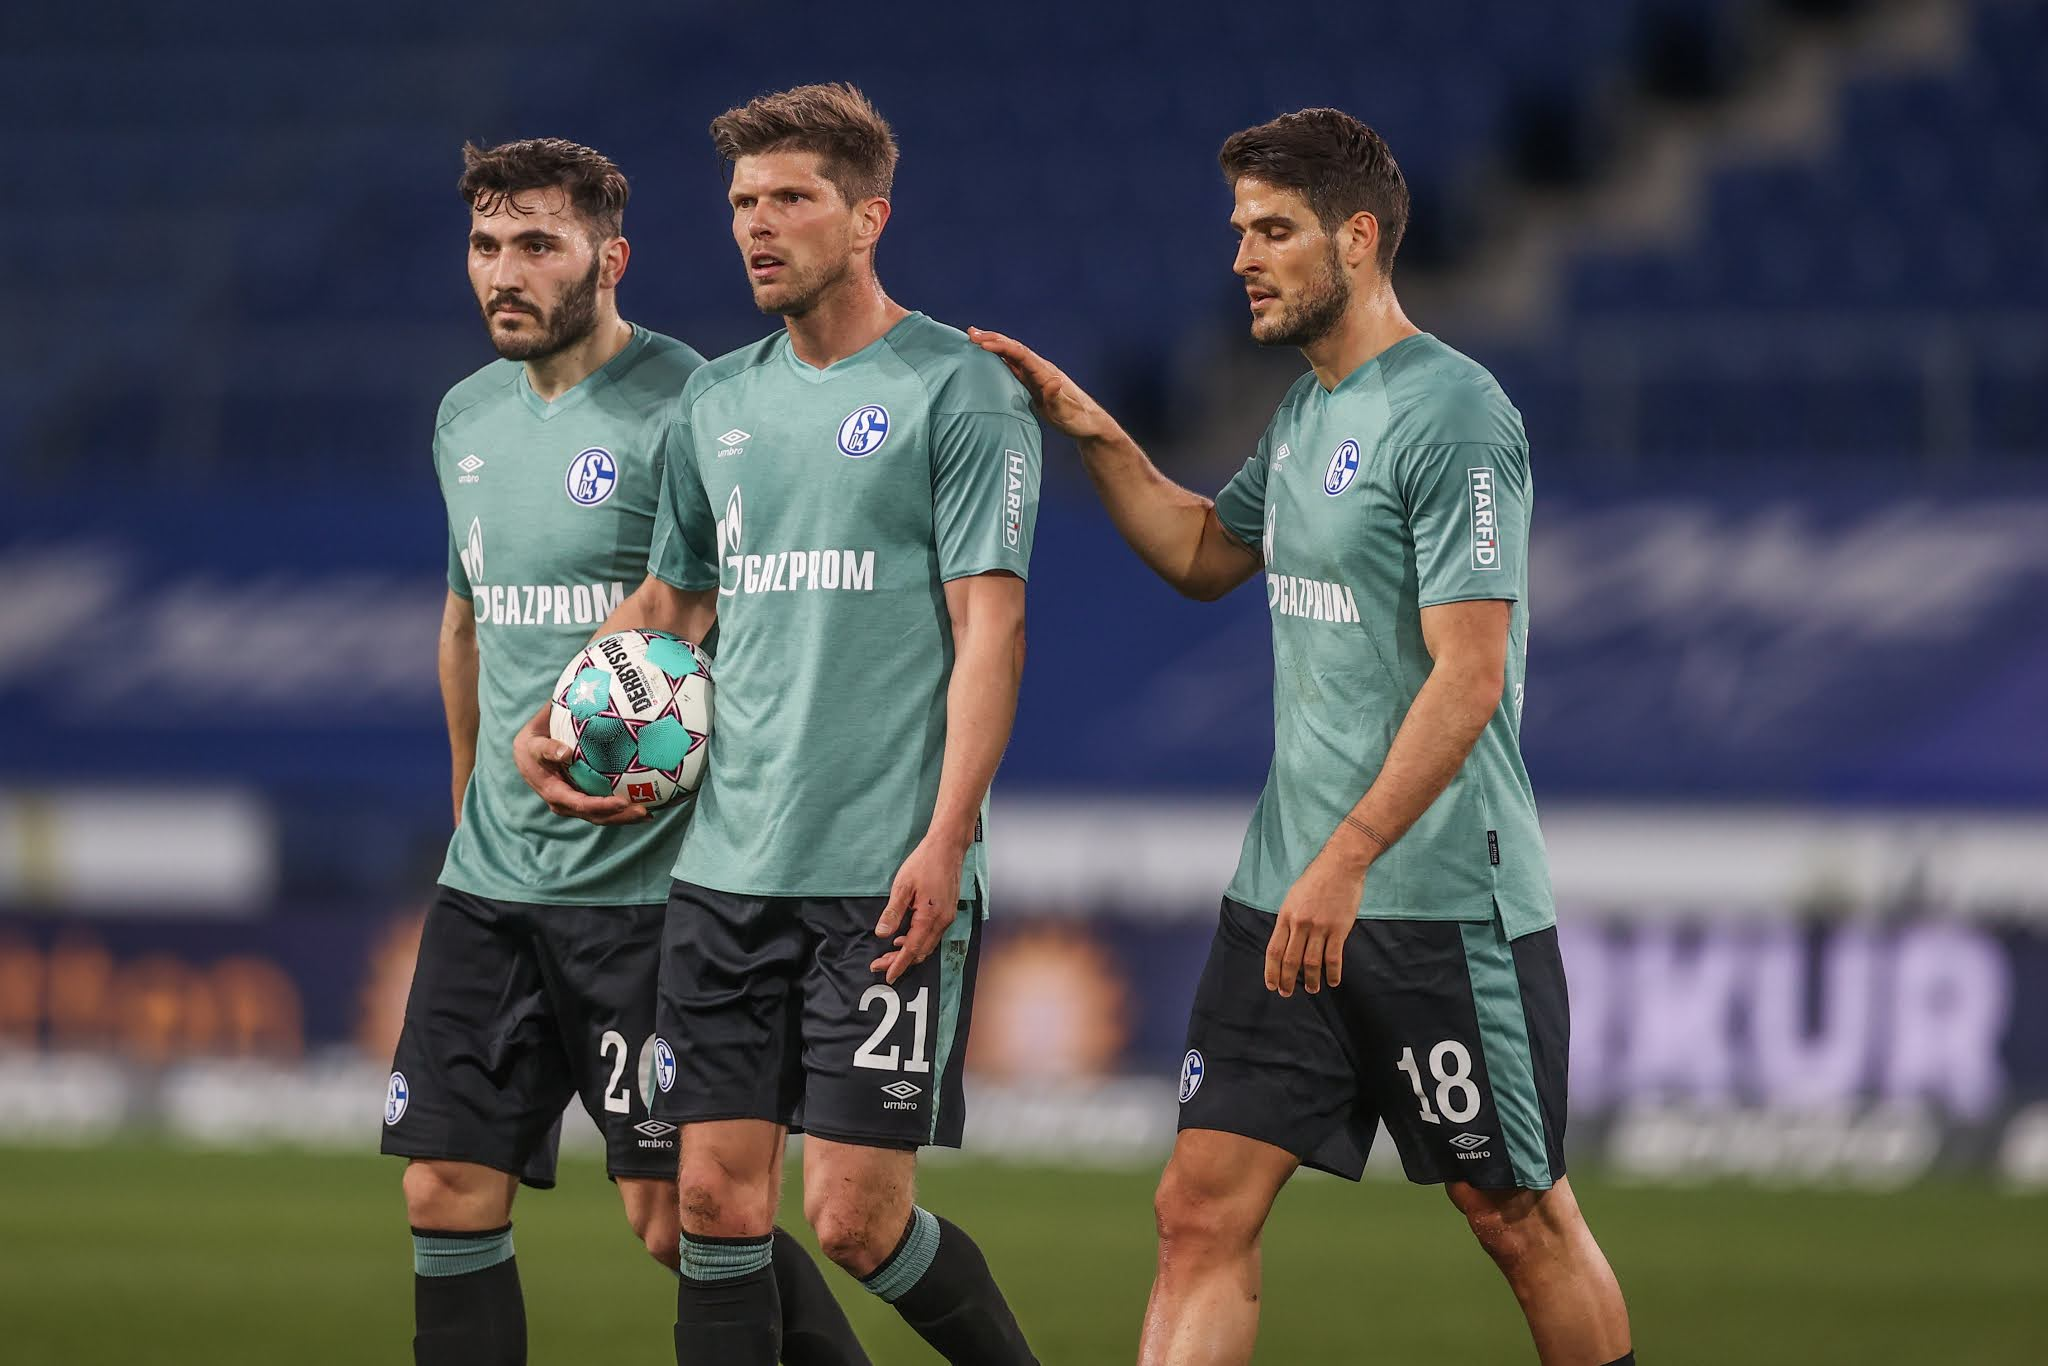 Schalke players react after losing to Arminia Bielefeld and being relegated from the Bundesliga